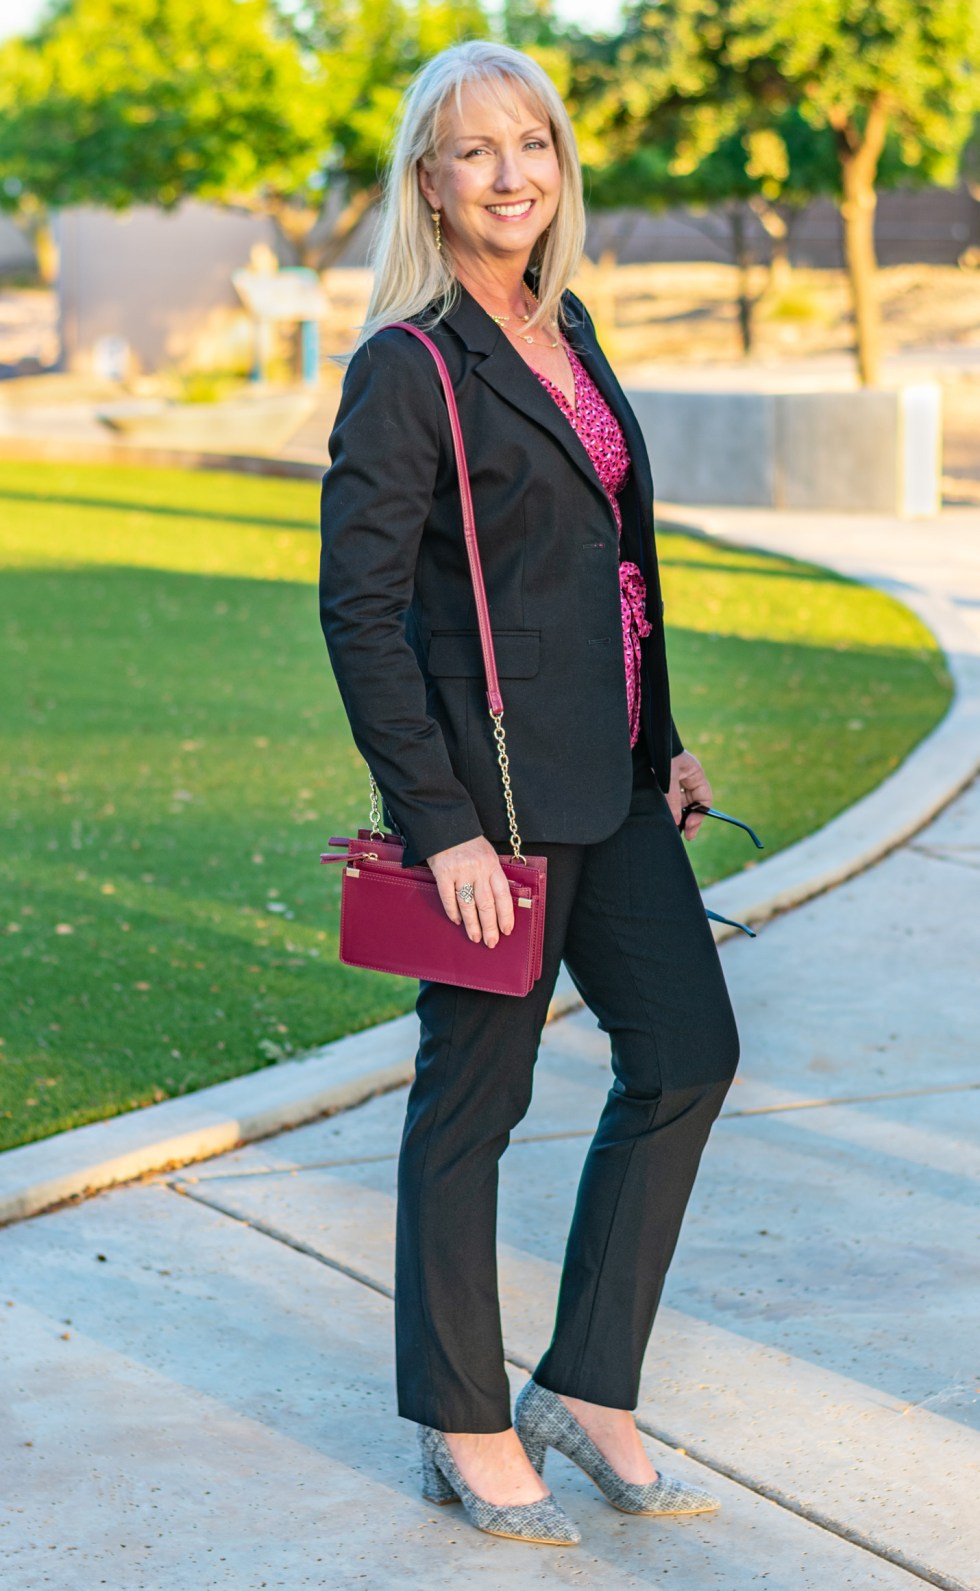 Black Blazer with Pink Wrap Top